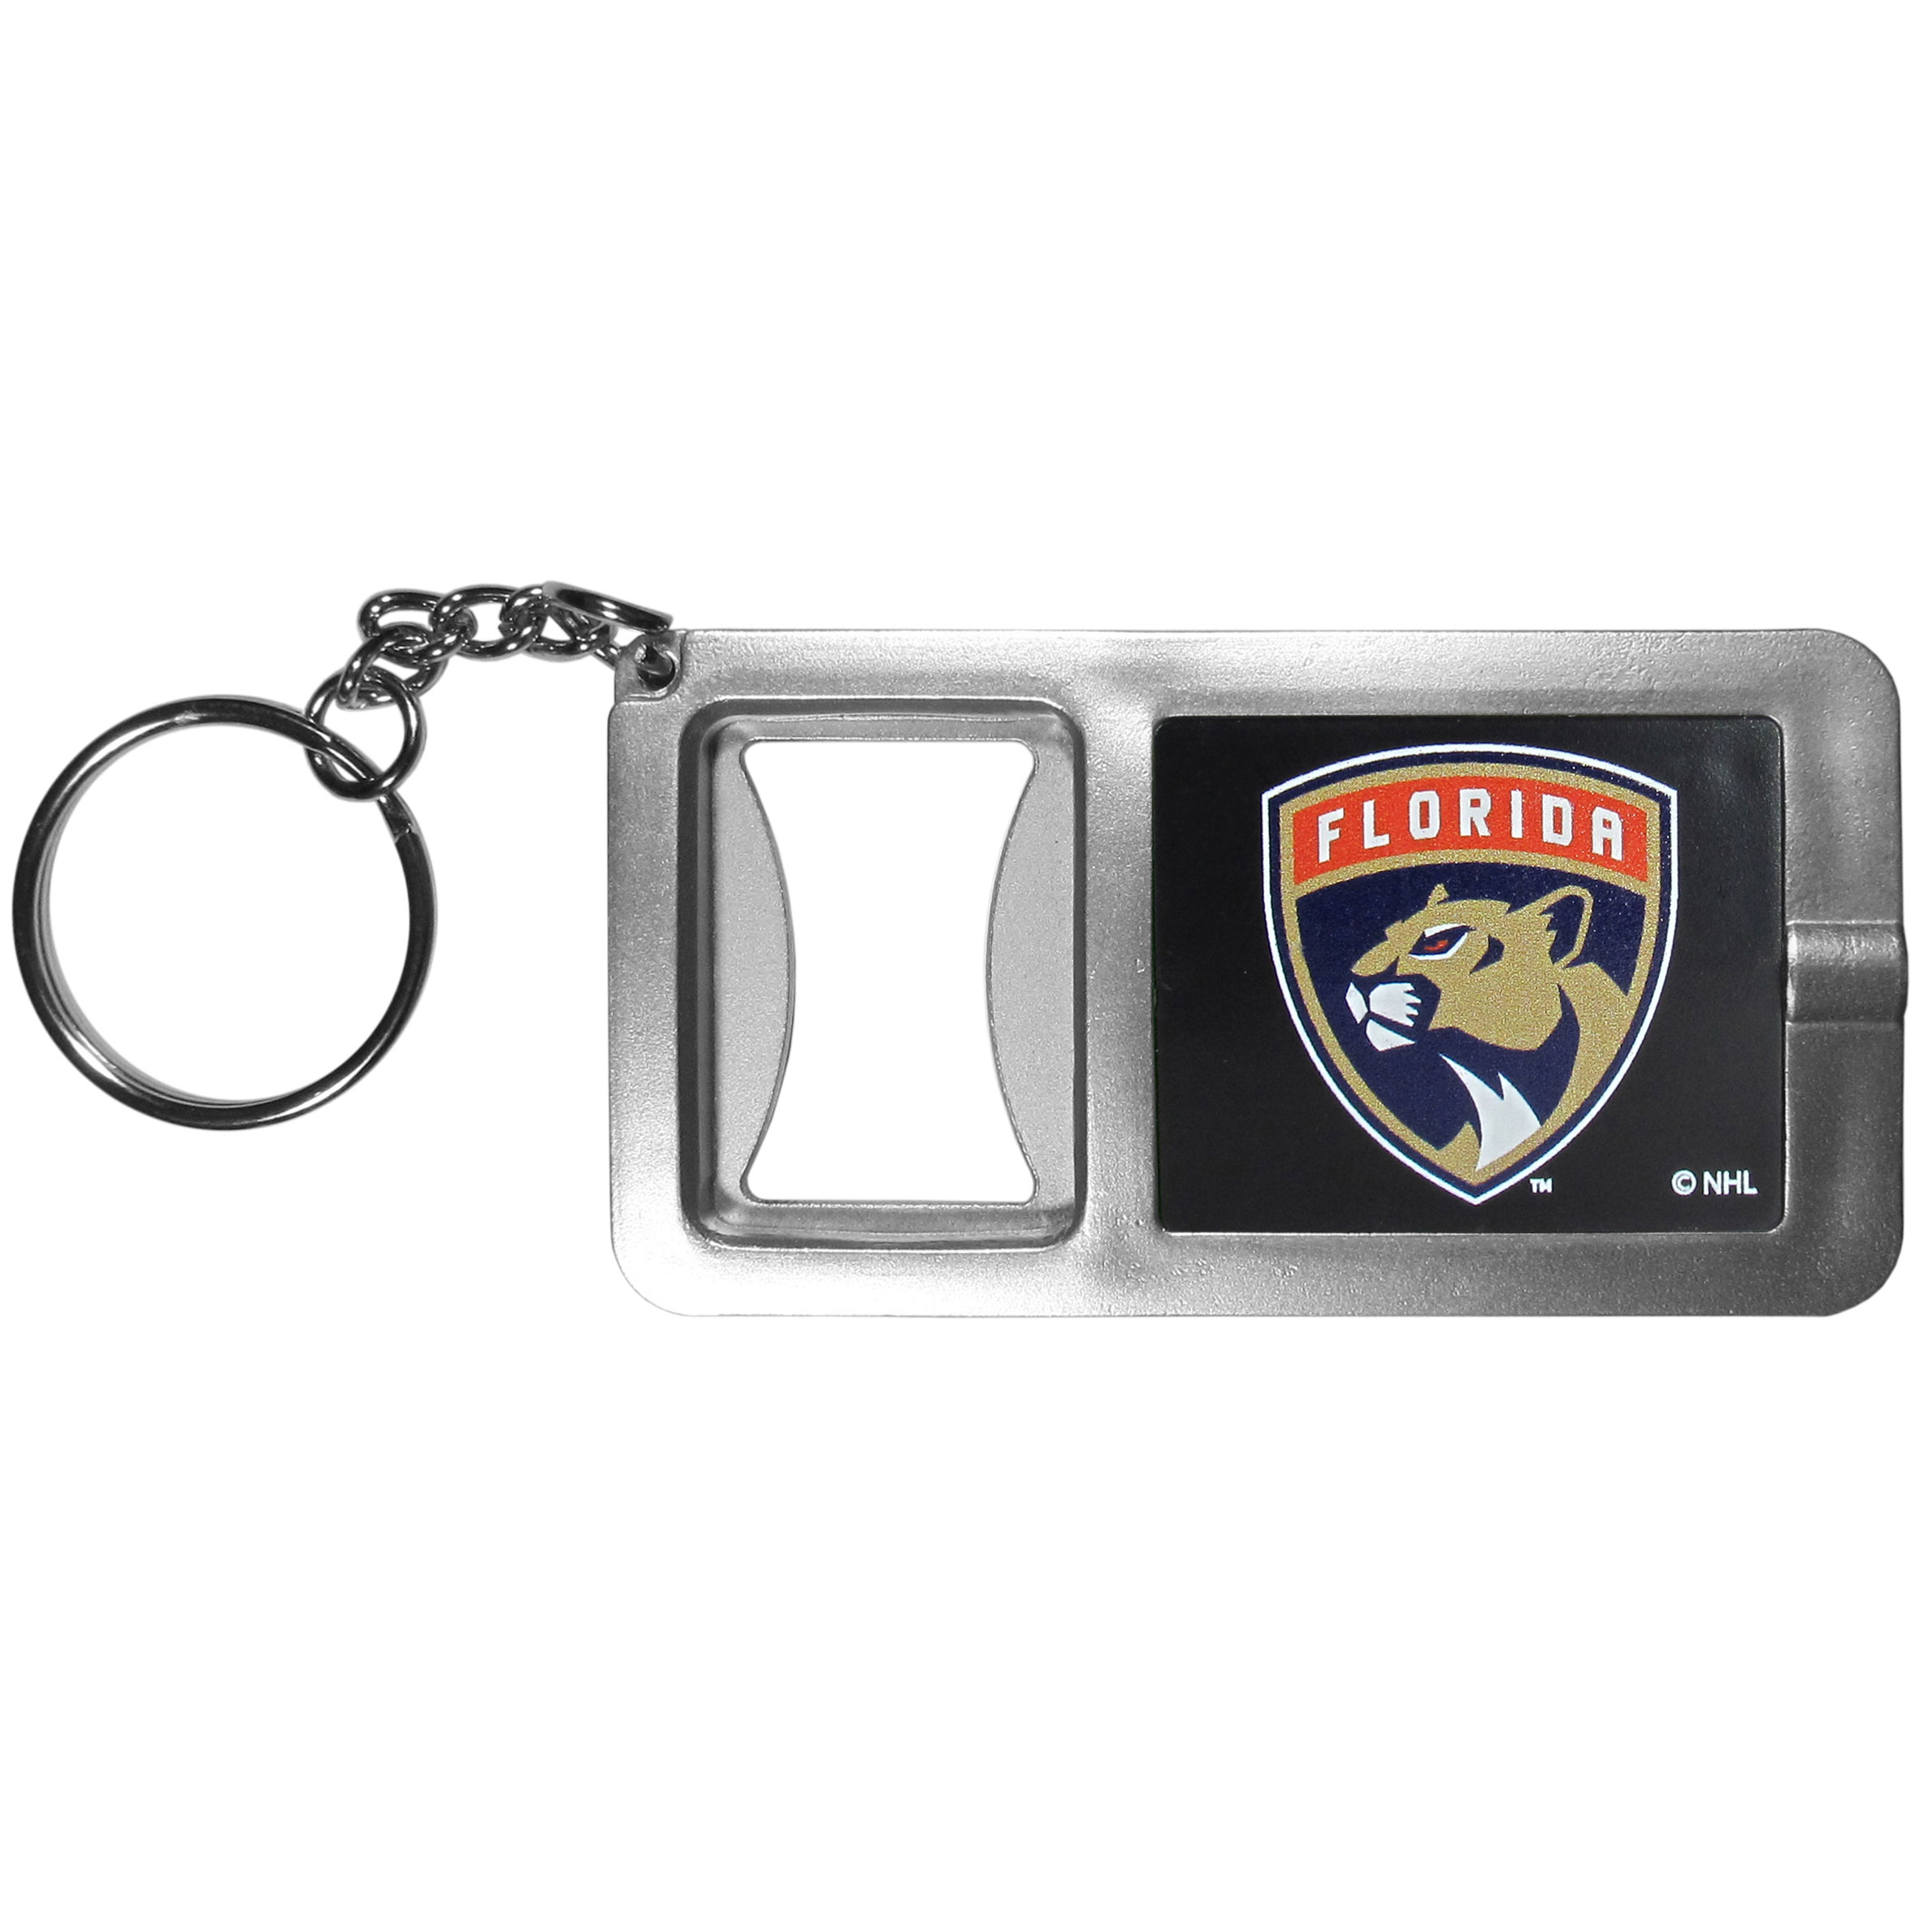 Florida Panthers® Flashlight Key Chain with Bottle Opener - Never be without light with our Florida Panthers® flashlight keychain that features a handy bottle opener feature. This versatile key chain is perfect for camping and travel and is a great way to show off your team pride!